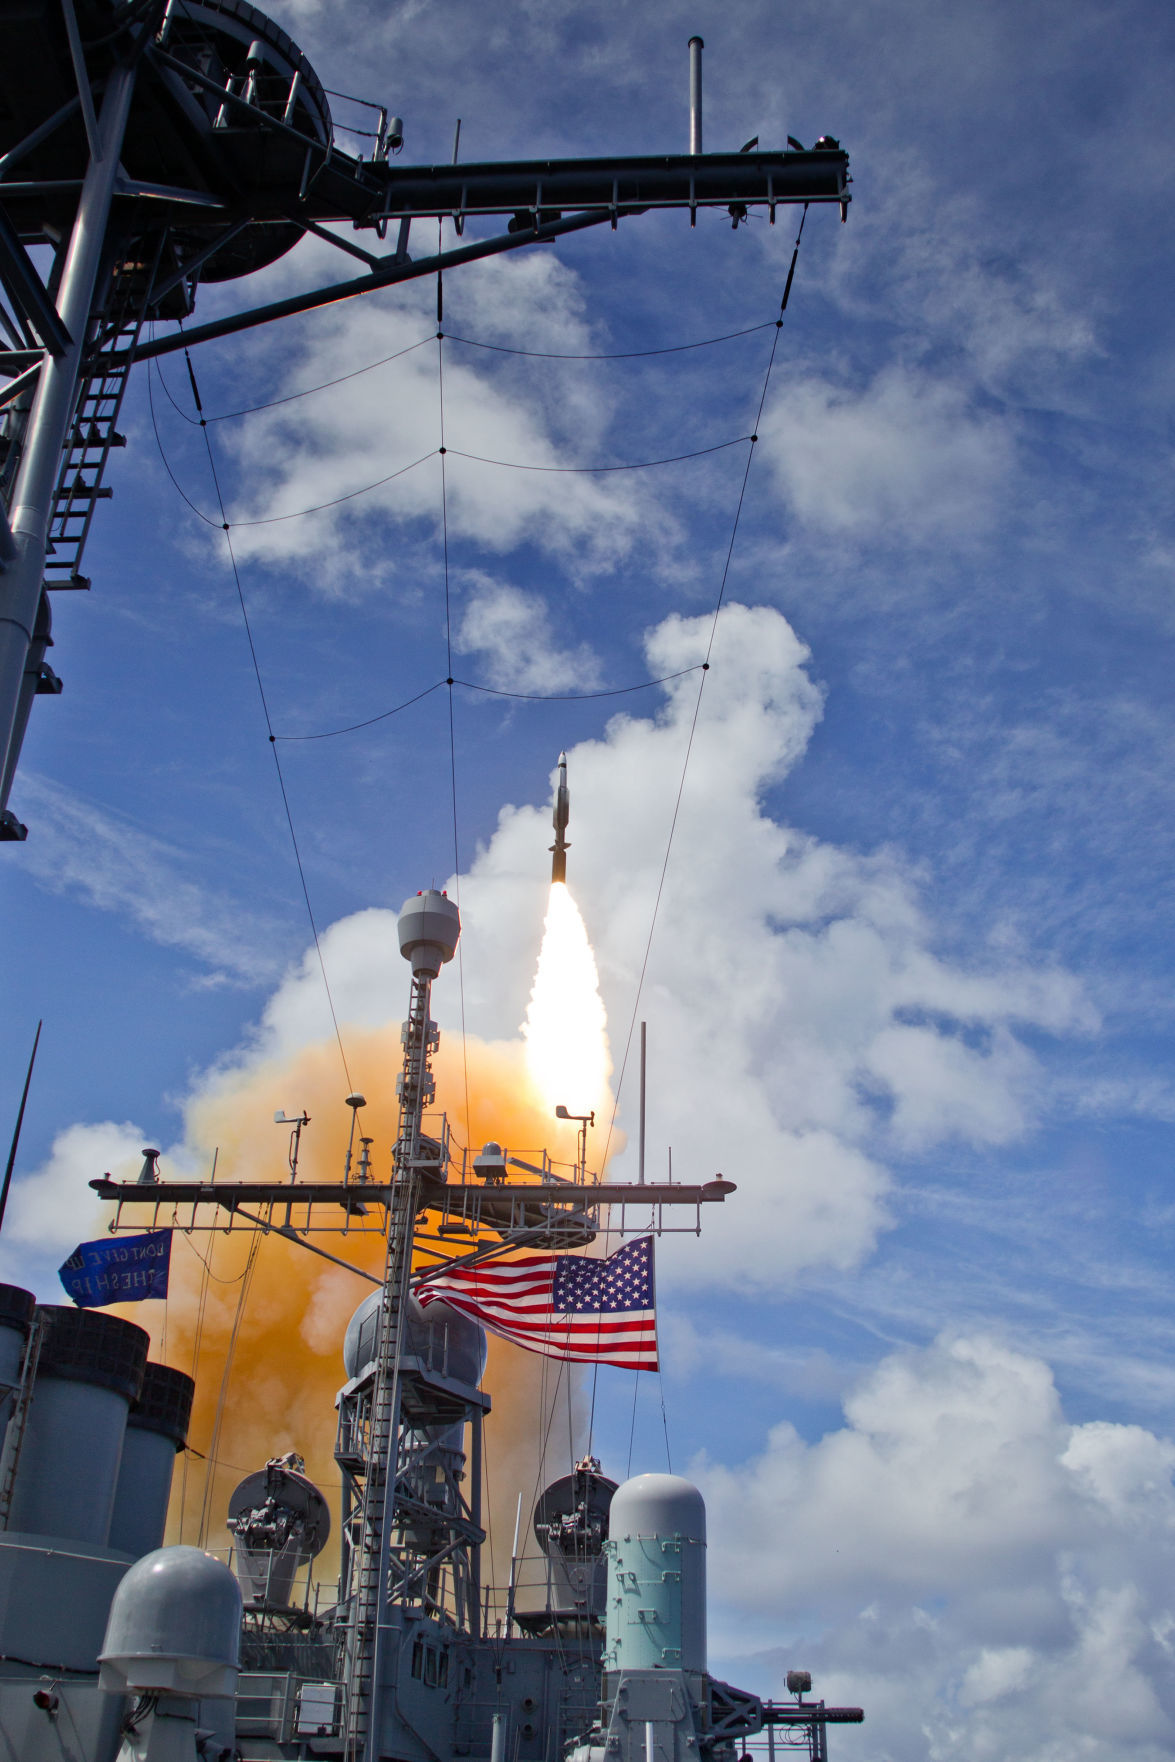 Raytheon looks to land big multi-year contracts amid growing missile threats